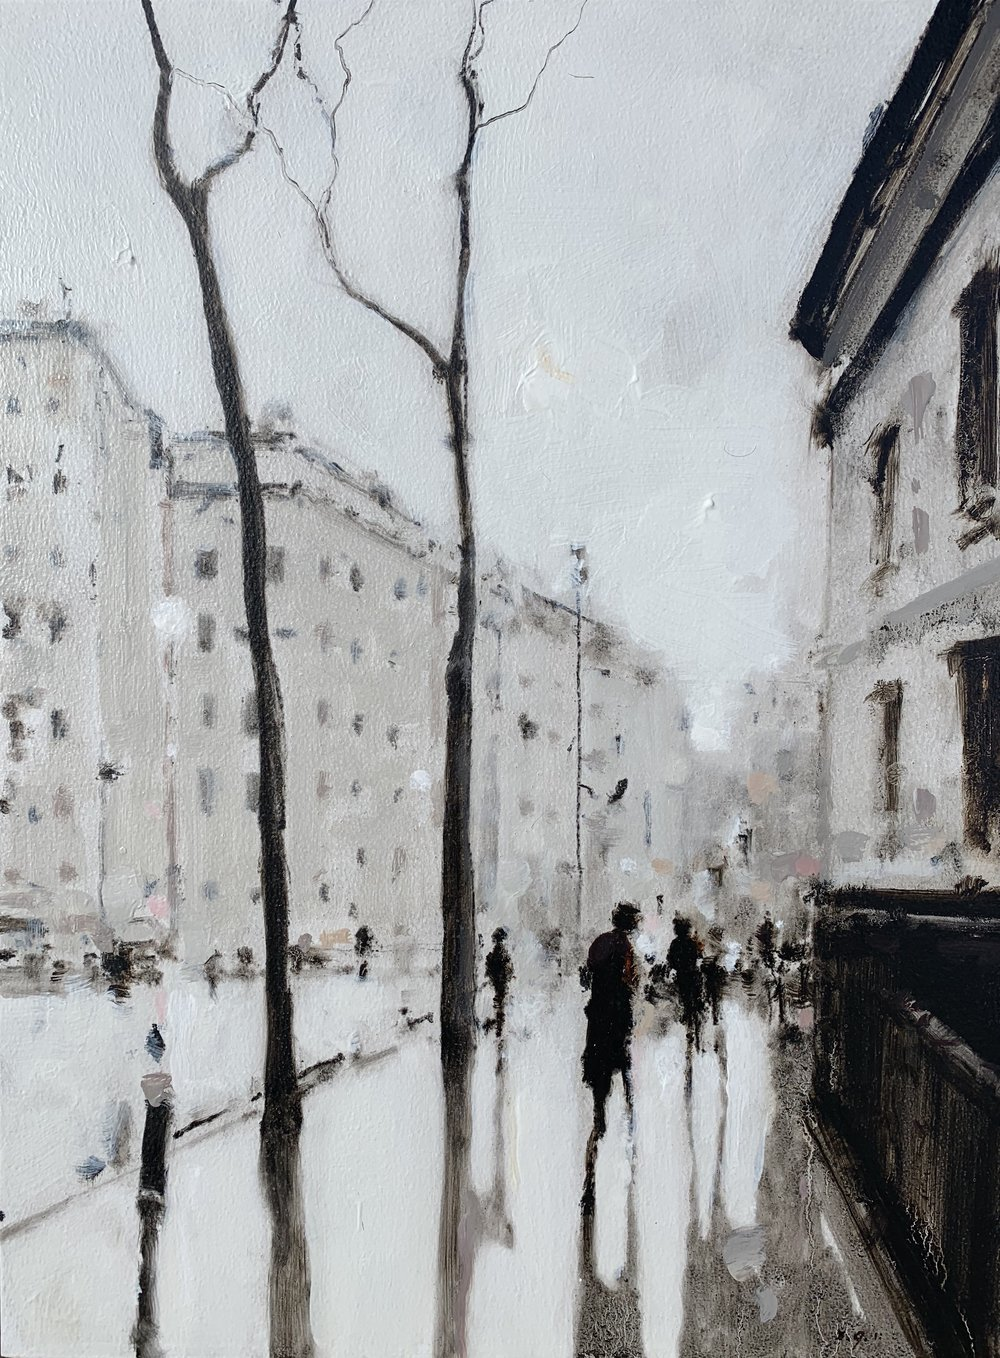 Geoffrey Johnson, Central London, 16X12, Oil on Board